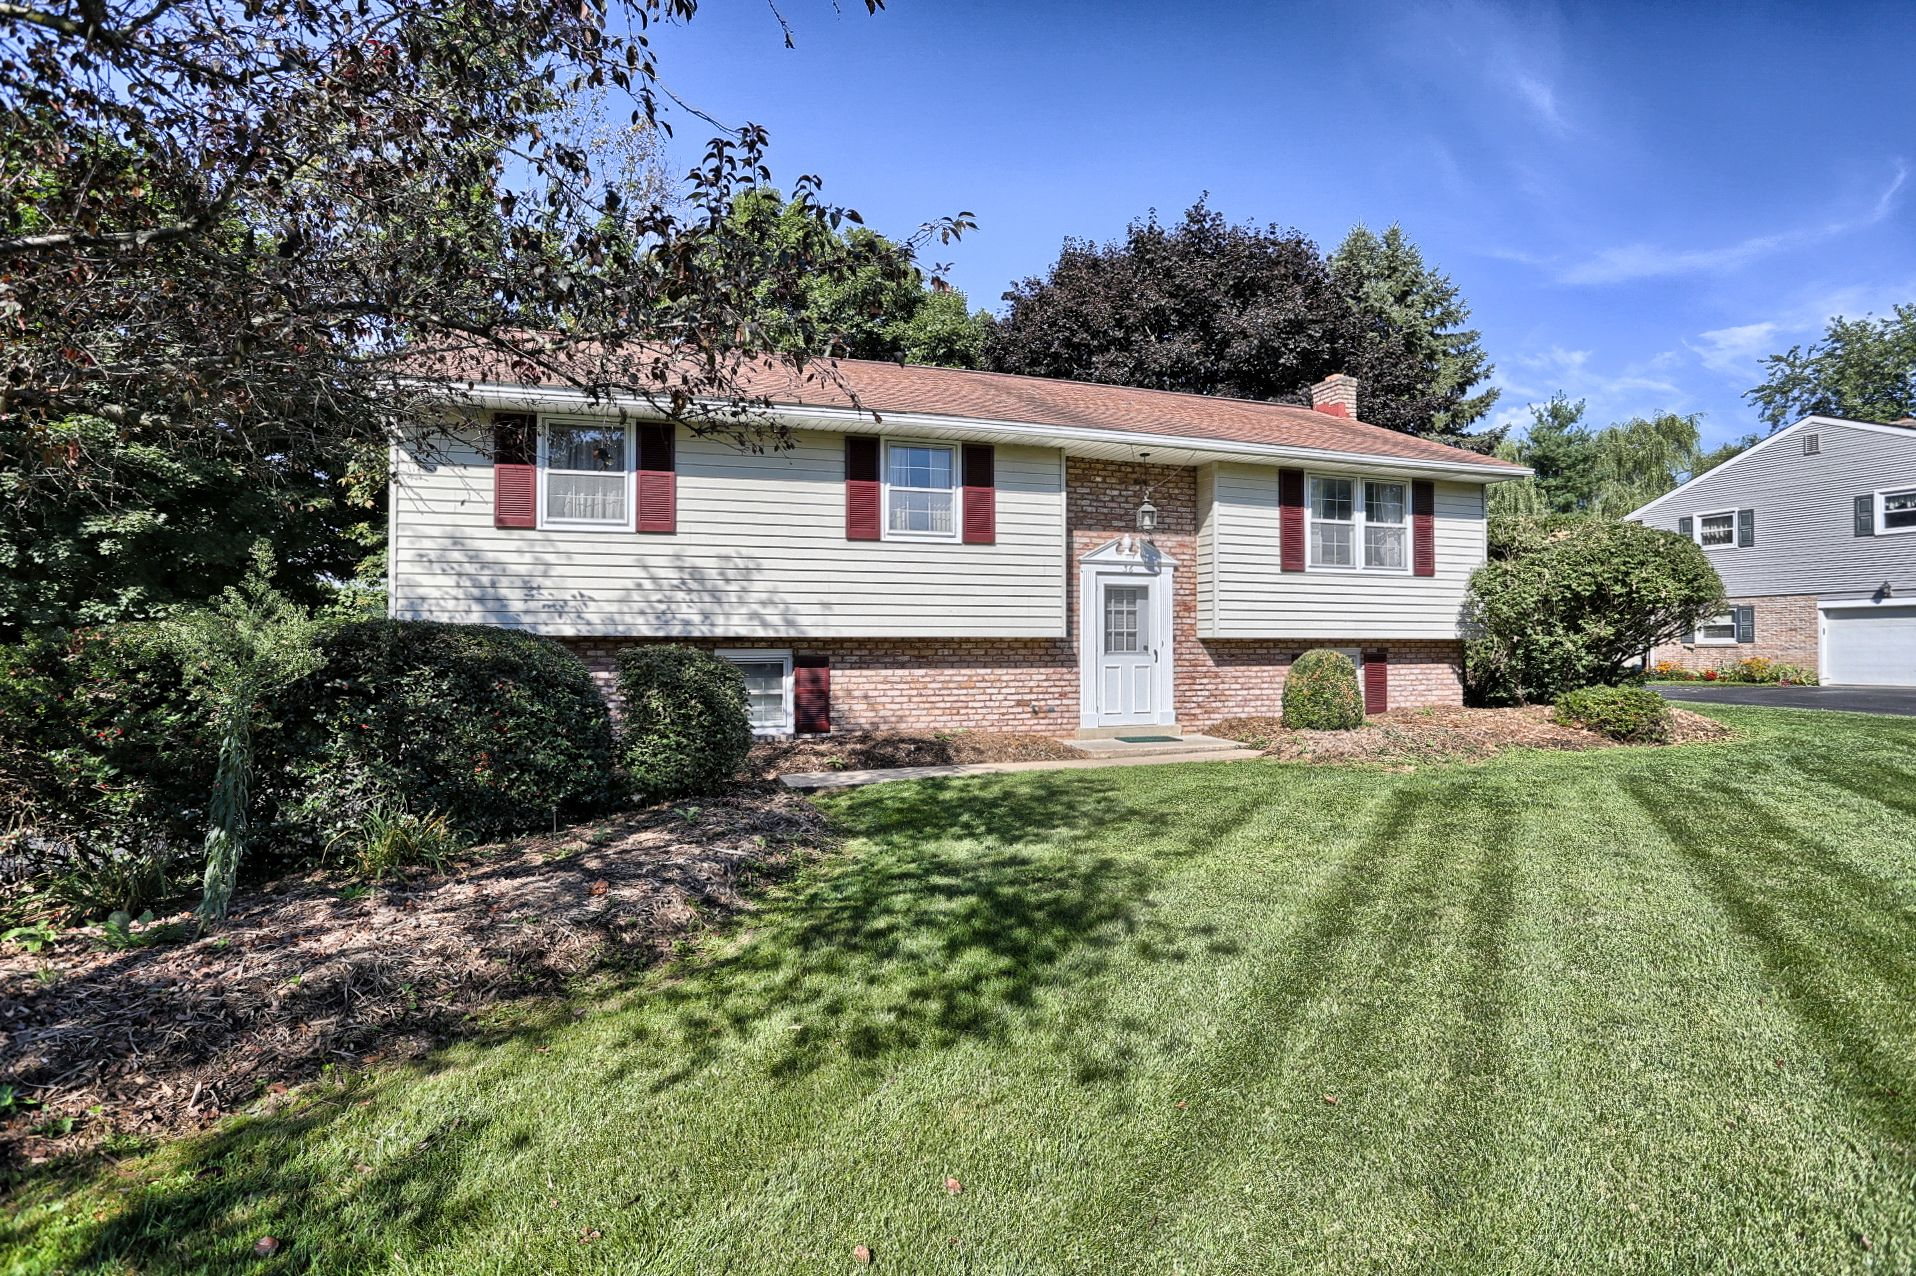 Front View Leola Pa Homesforsale Realestate Pennsylvania Sold